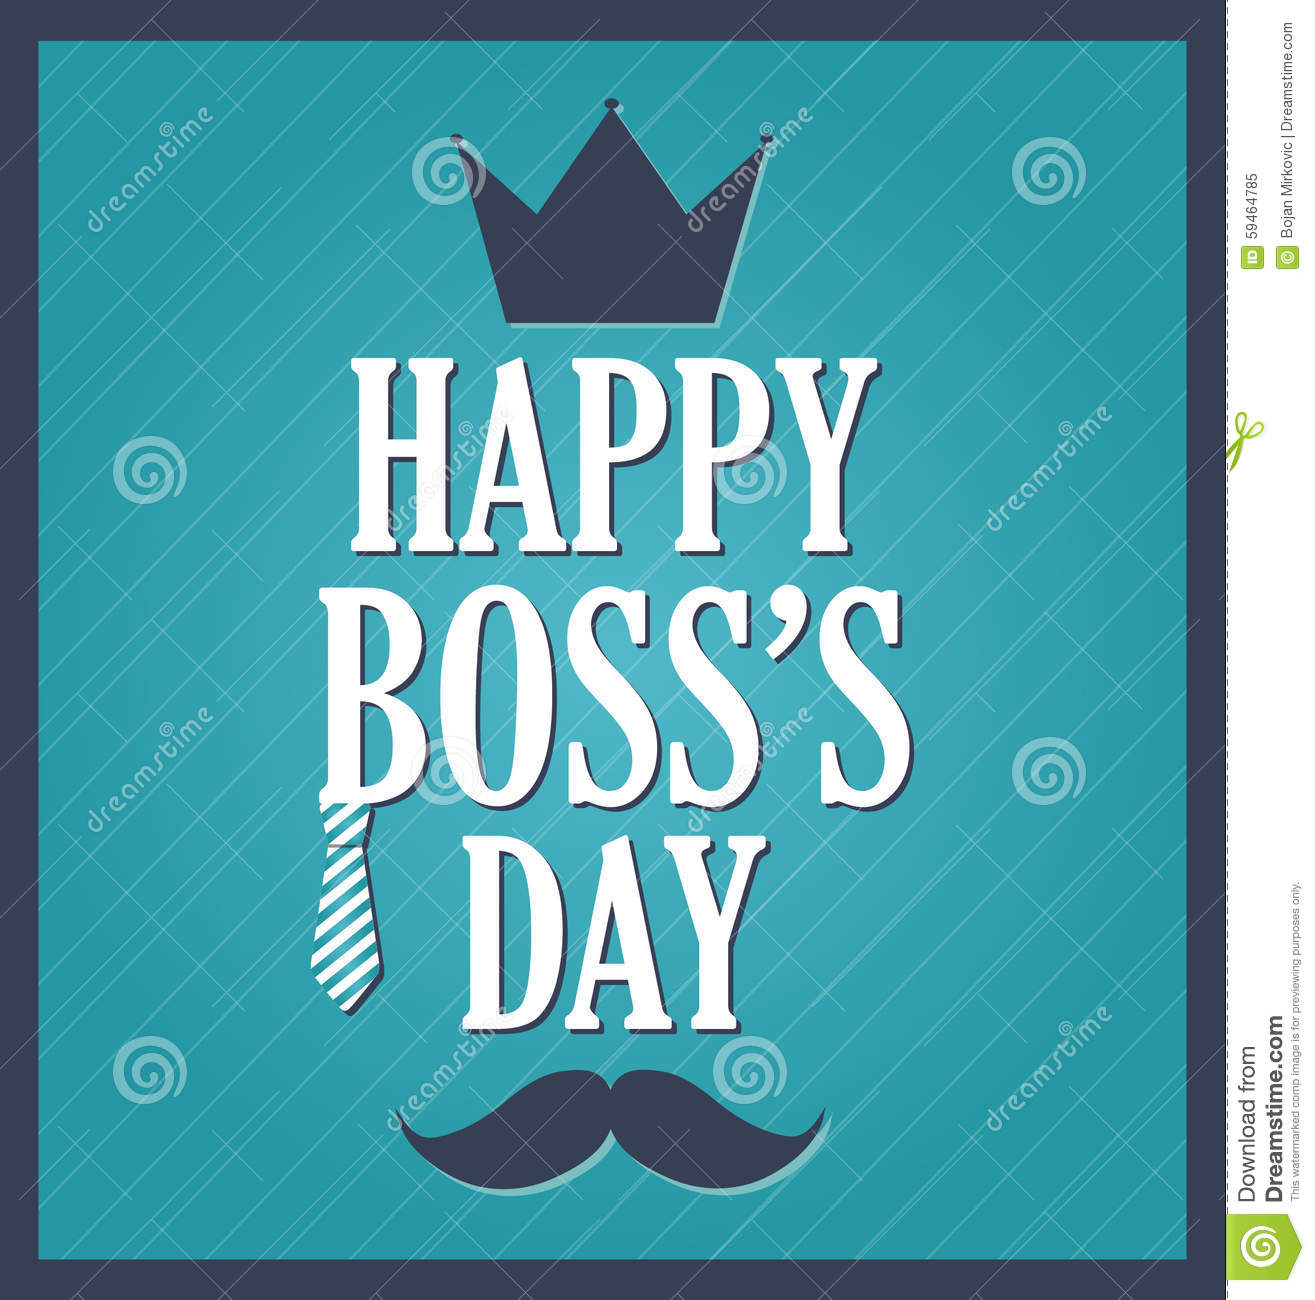 Boss day greeting template blue background dark blue frame stock boss day greeting template blue background dark blue frame m4hsunfo